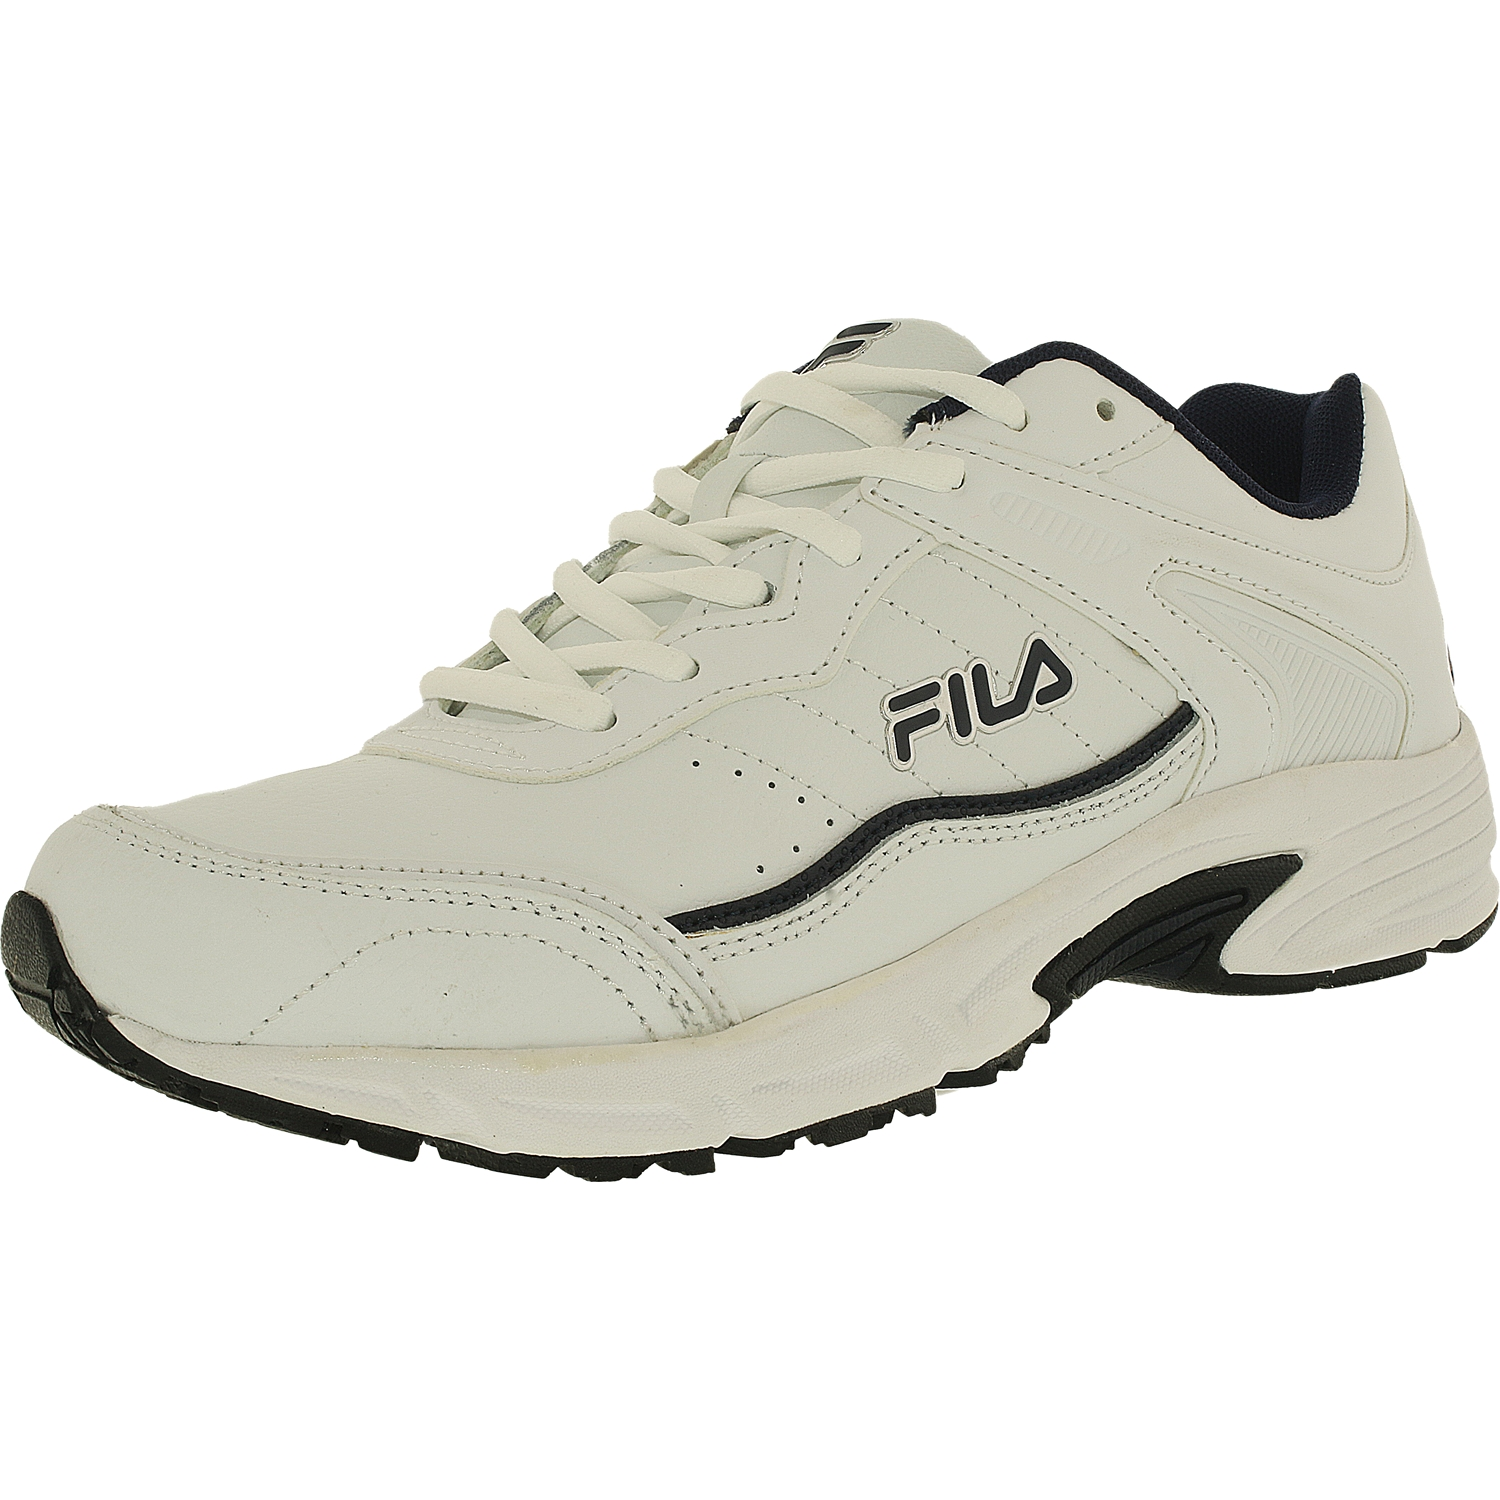 Fila Memory Sportland 4E Round Toe Leather Running Shoe by Fila